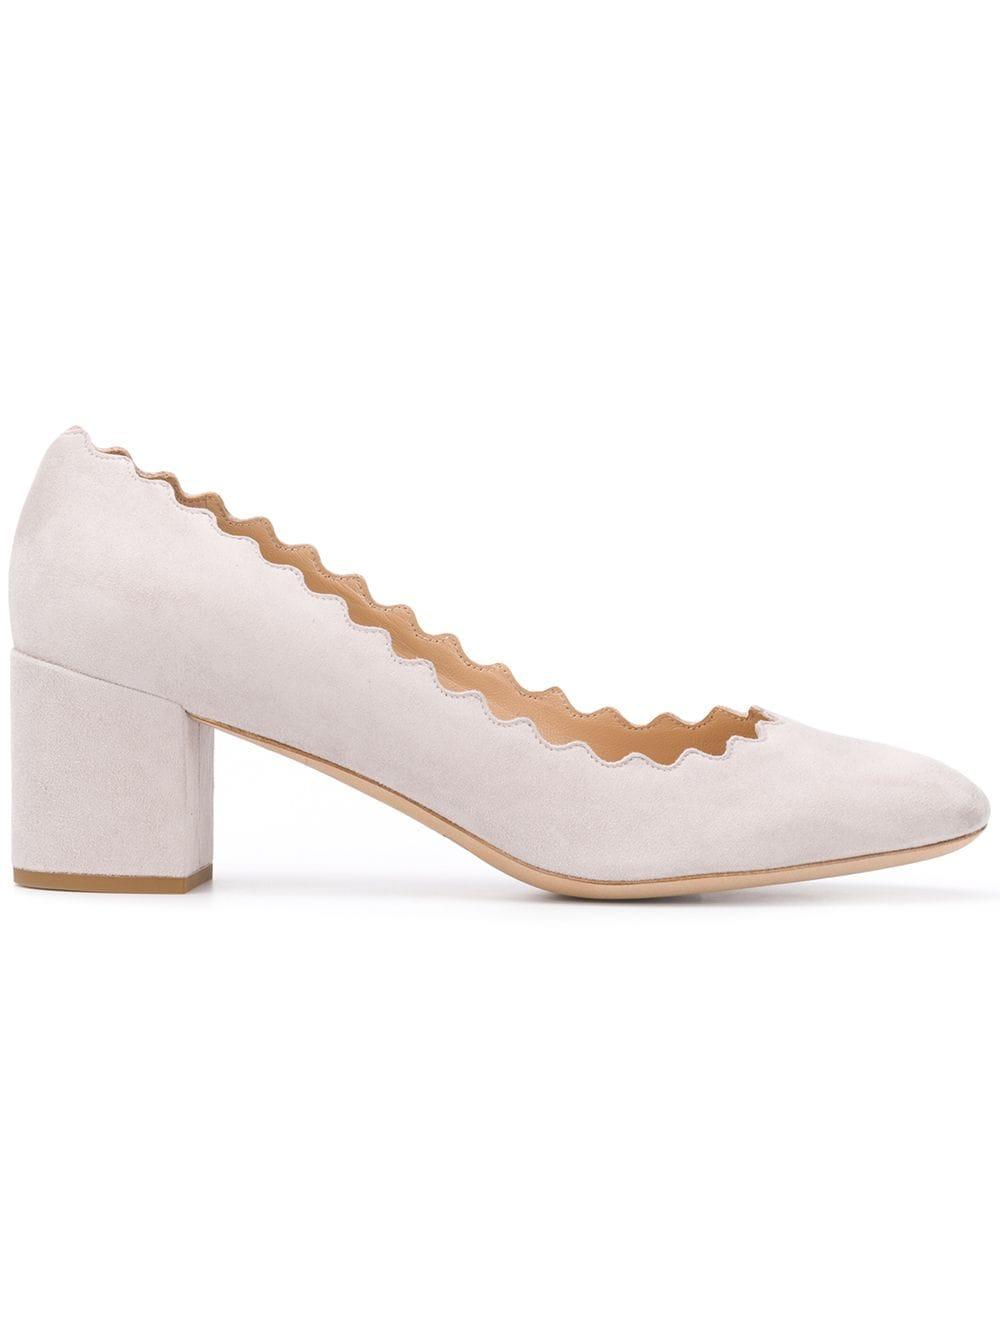 Lauren Scalloped 50mm Pump